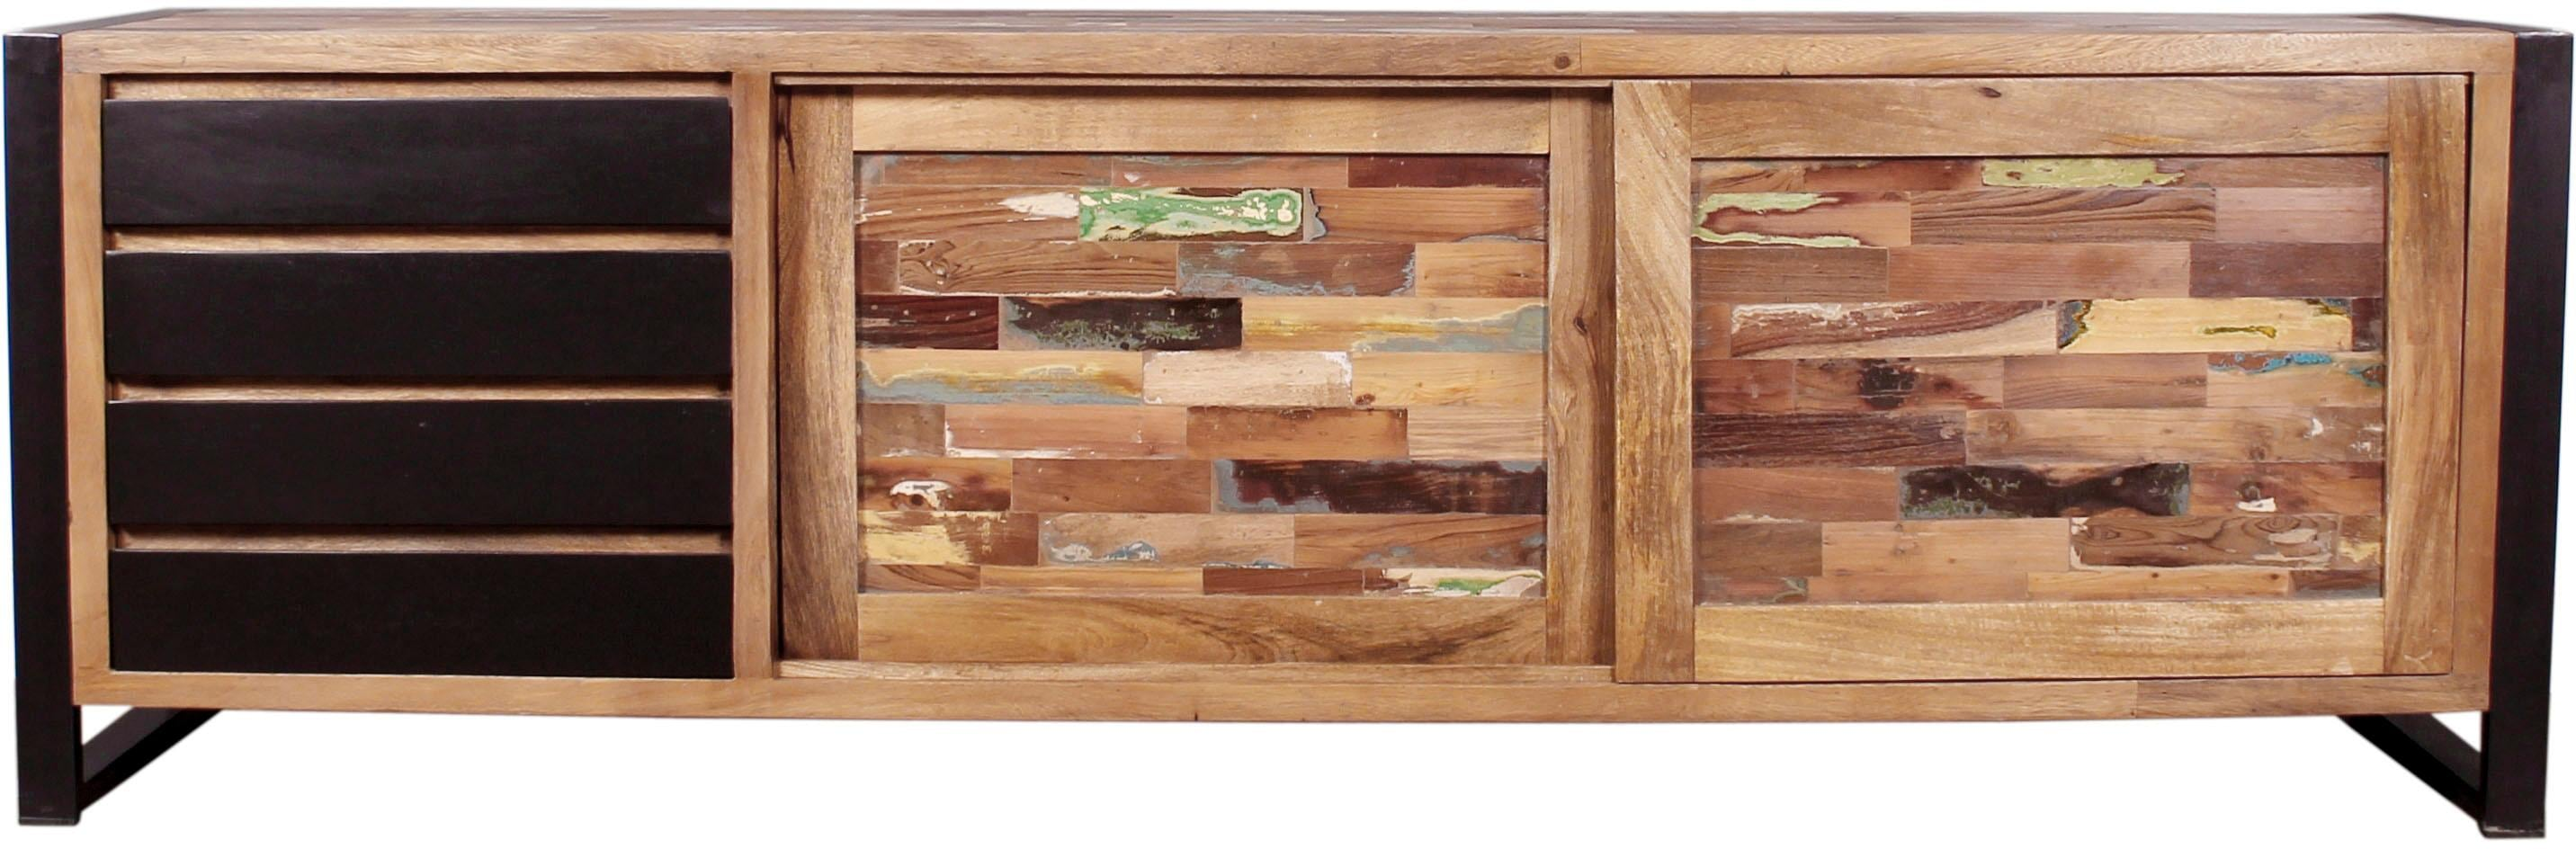 SIT Sideboard Mox L farbiges Recyclingholz mit Eisen